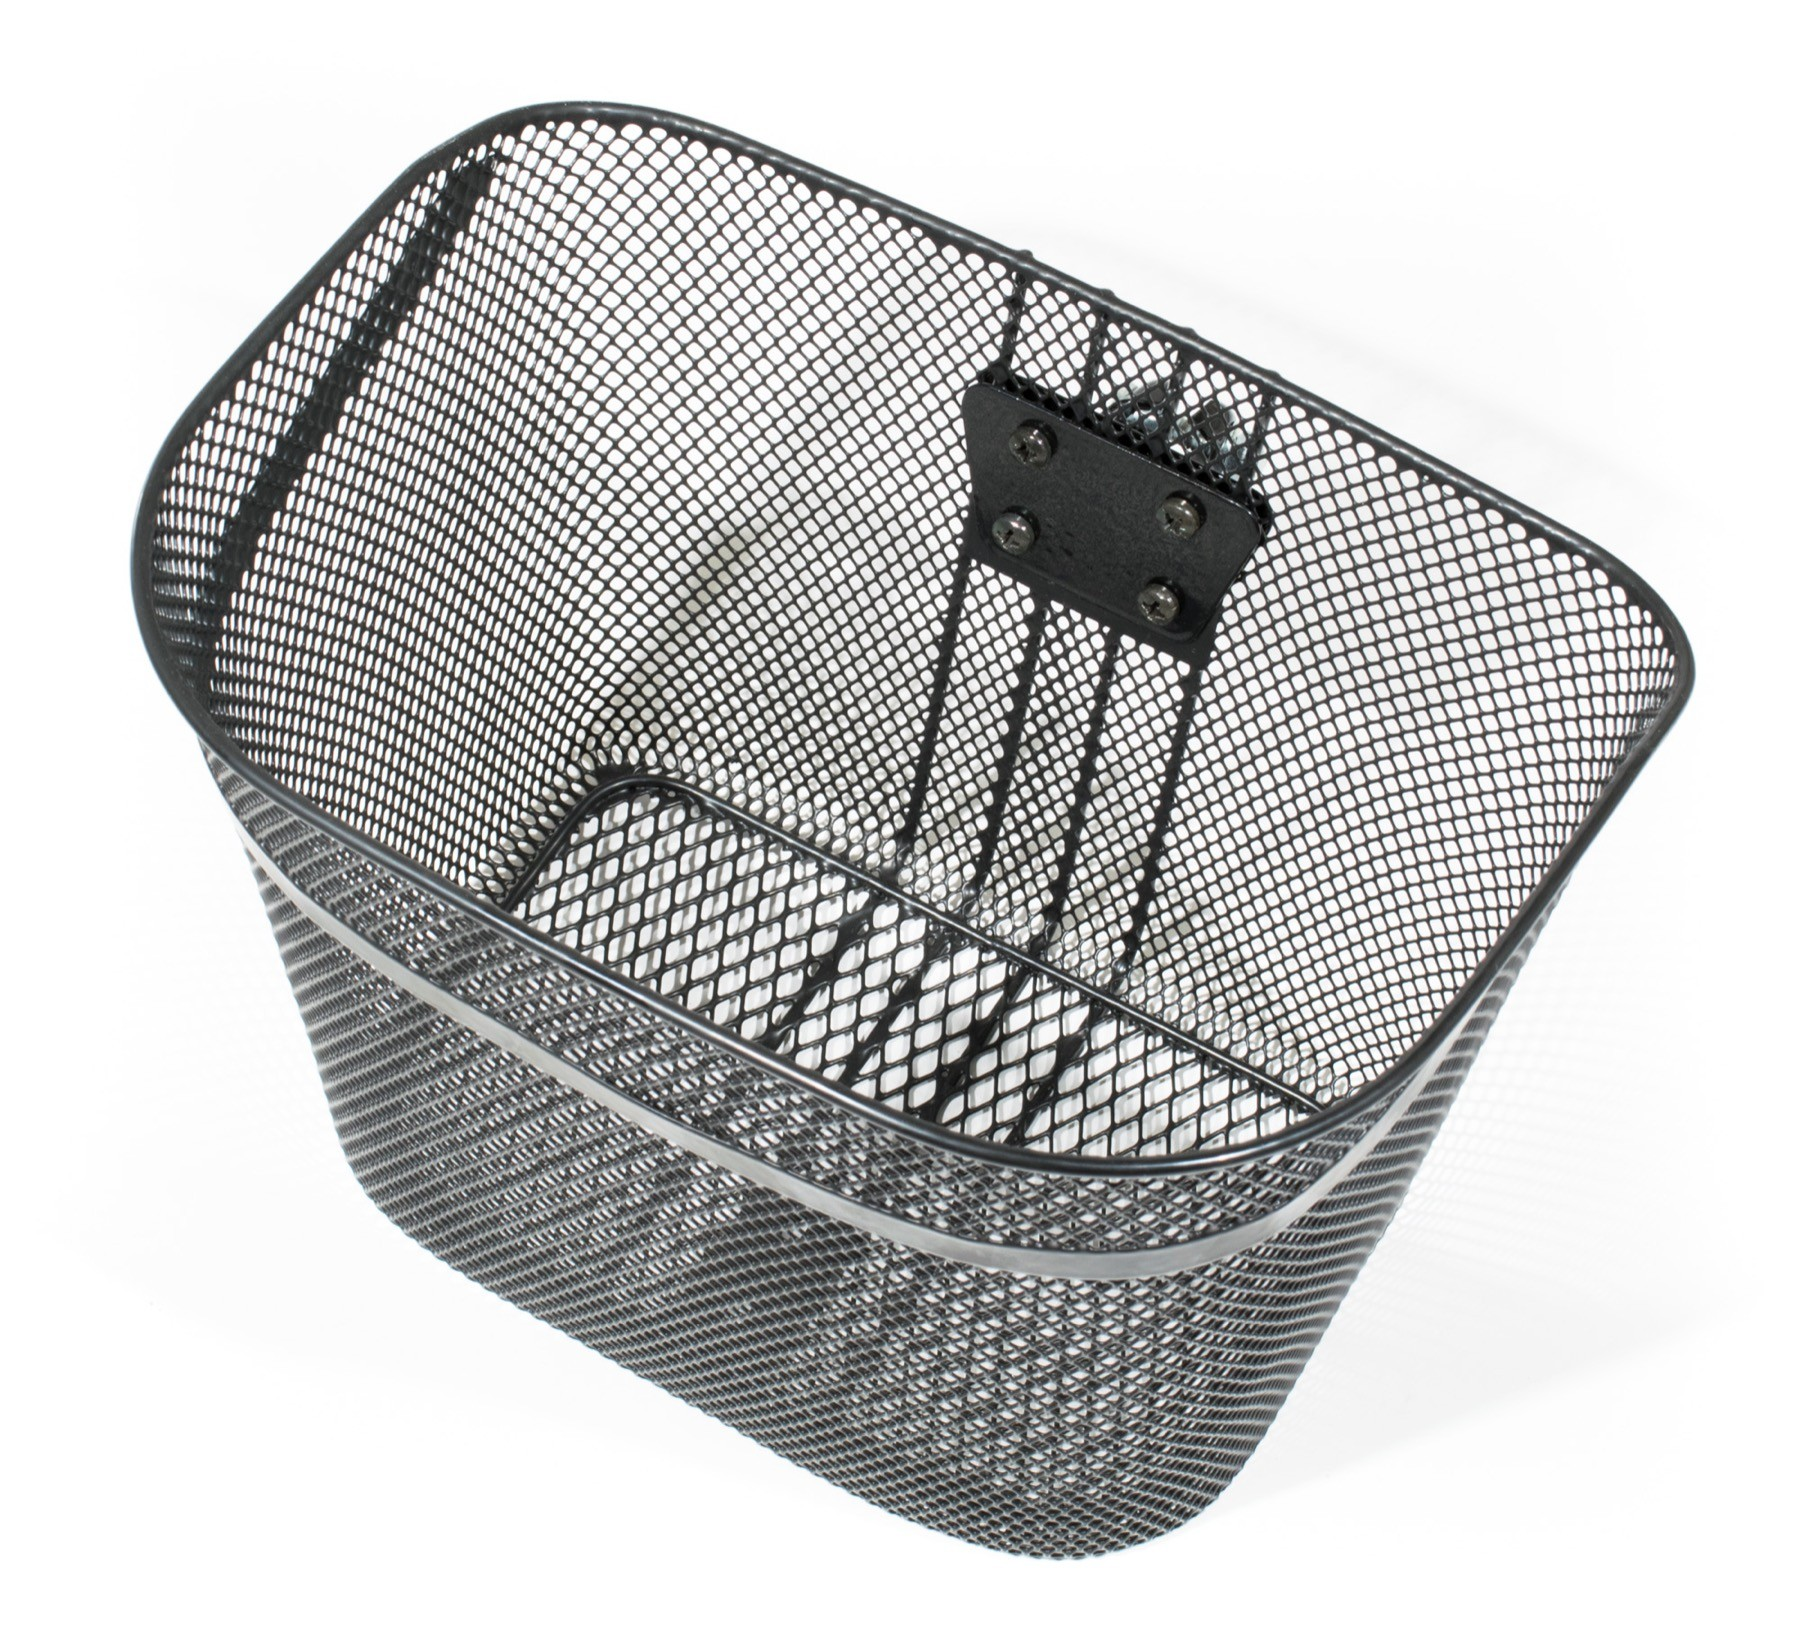 Bike Basket Big W Kickbike Worldwide Big Fixed Basket Accessories Kickspark